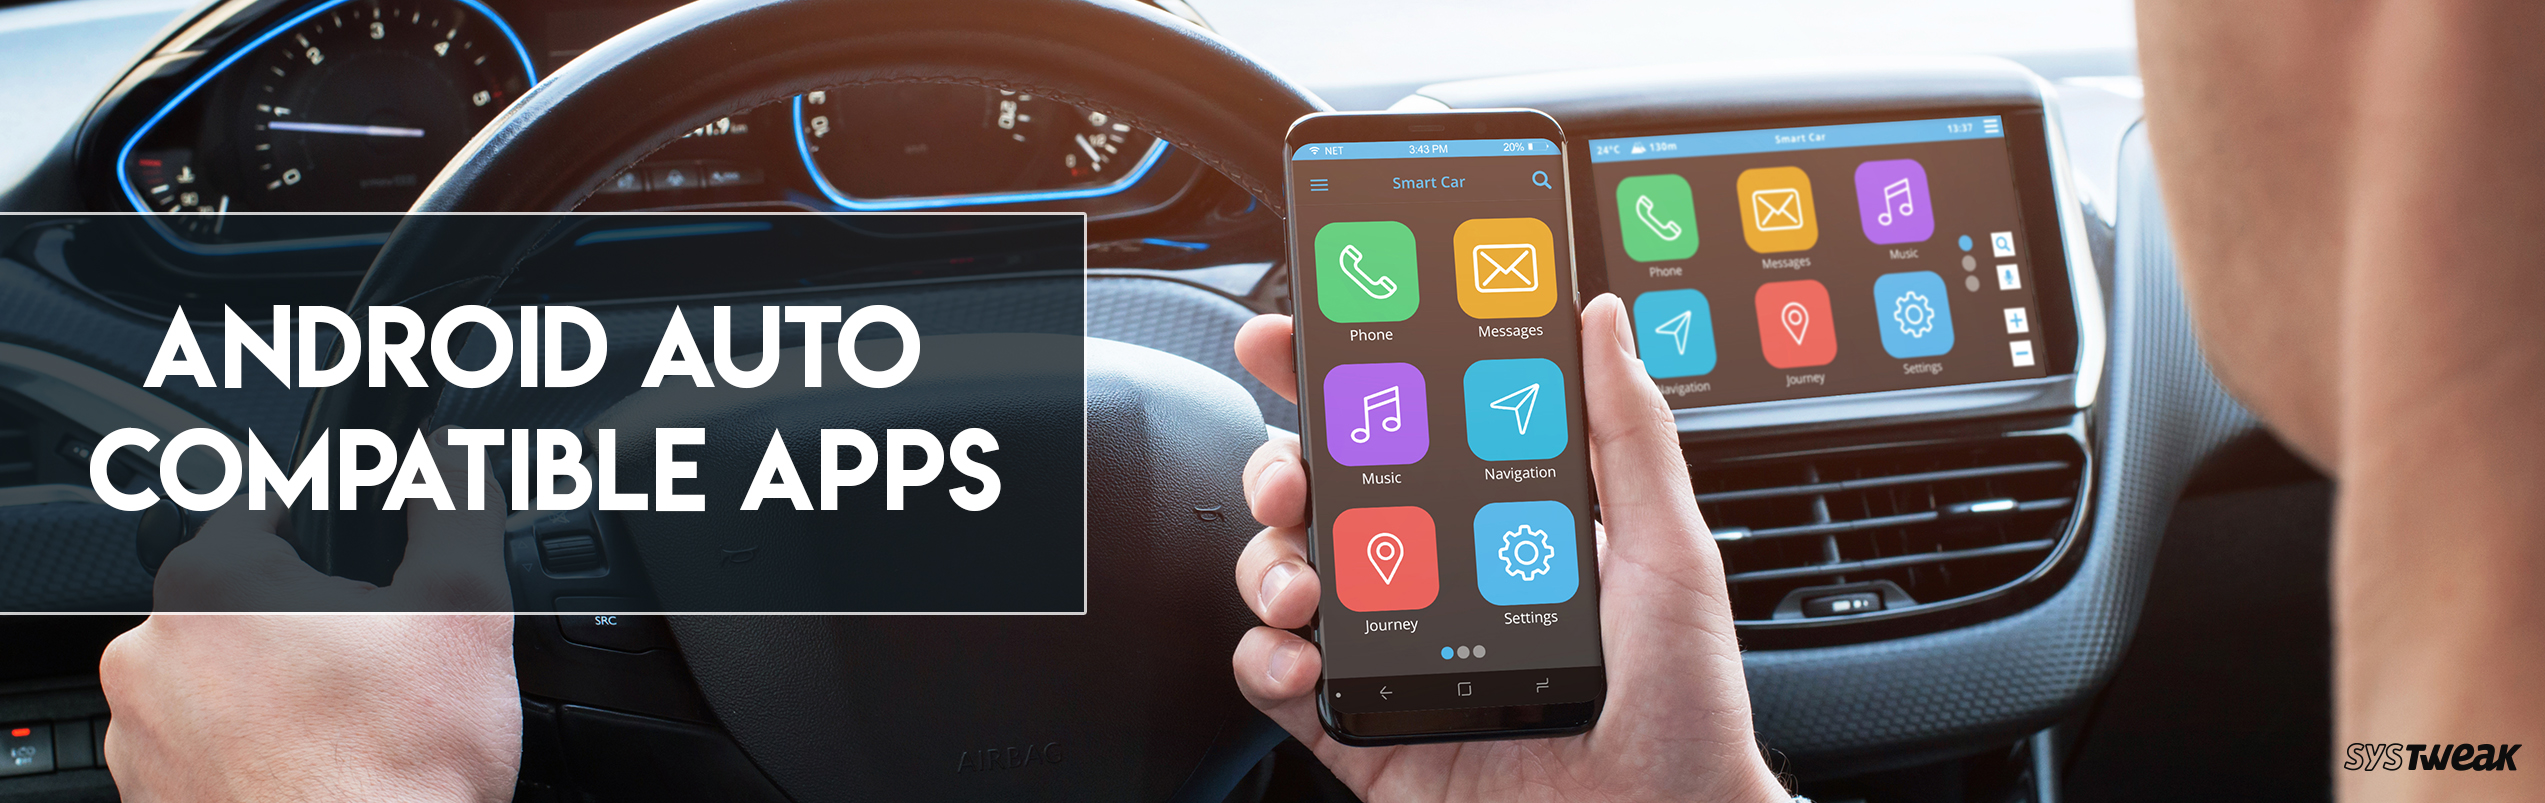 Best Android Auto Apps In 2018